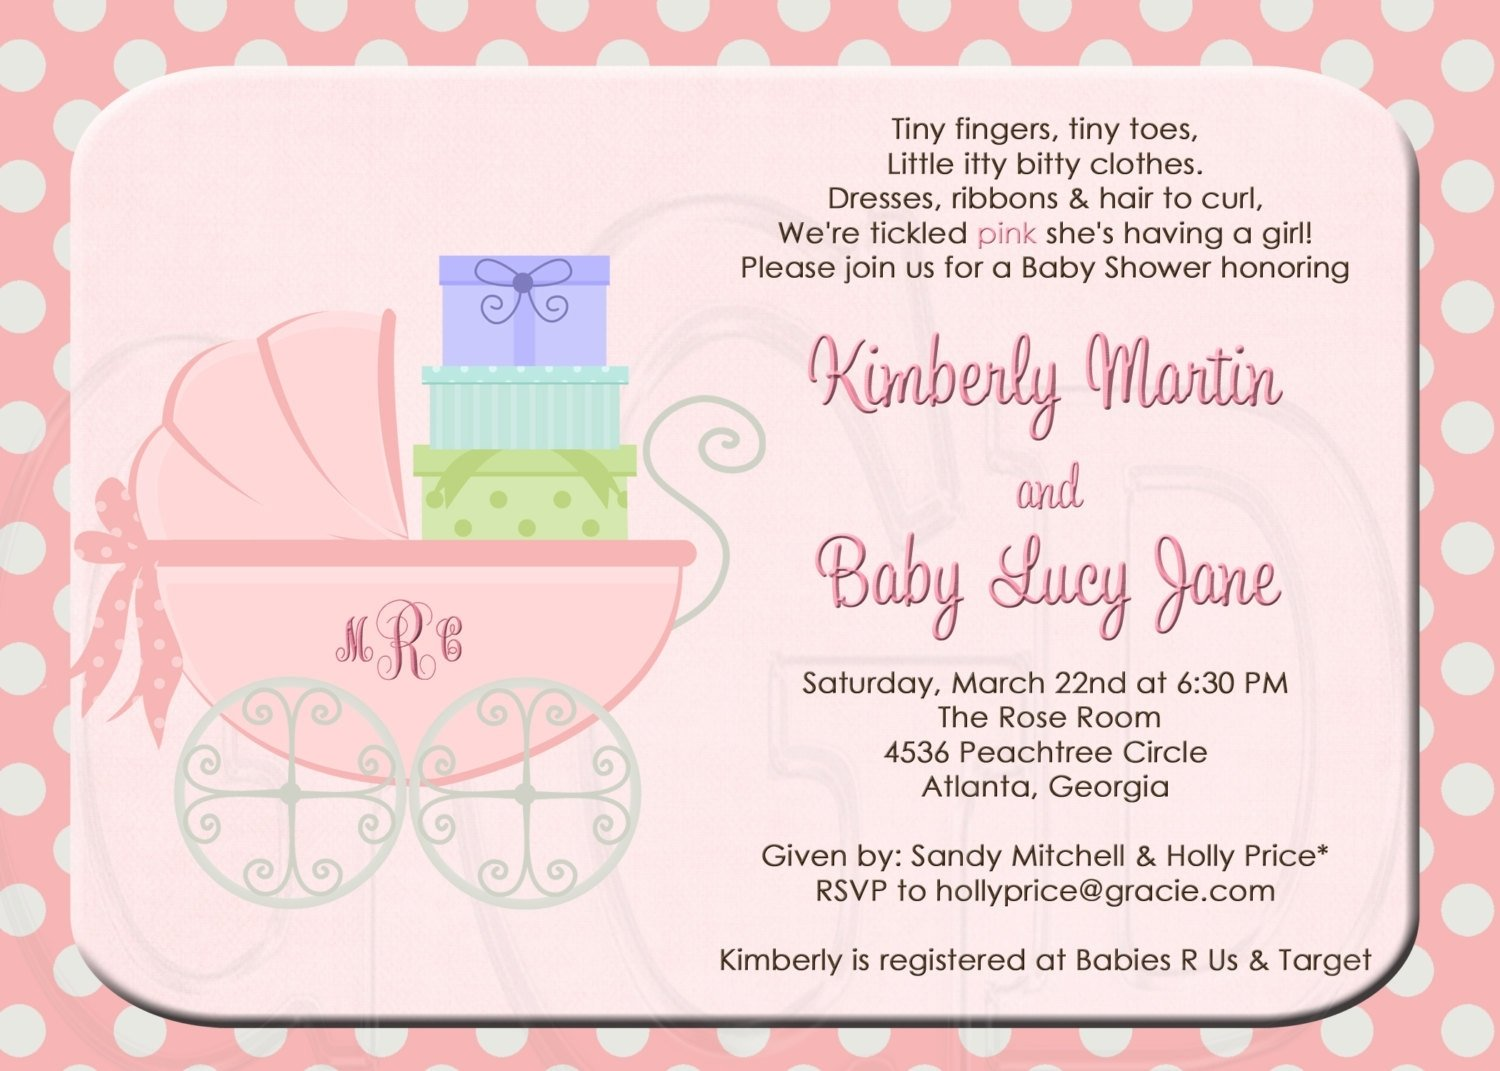 creative baby shower invitation wording ideas • baby showers ideas